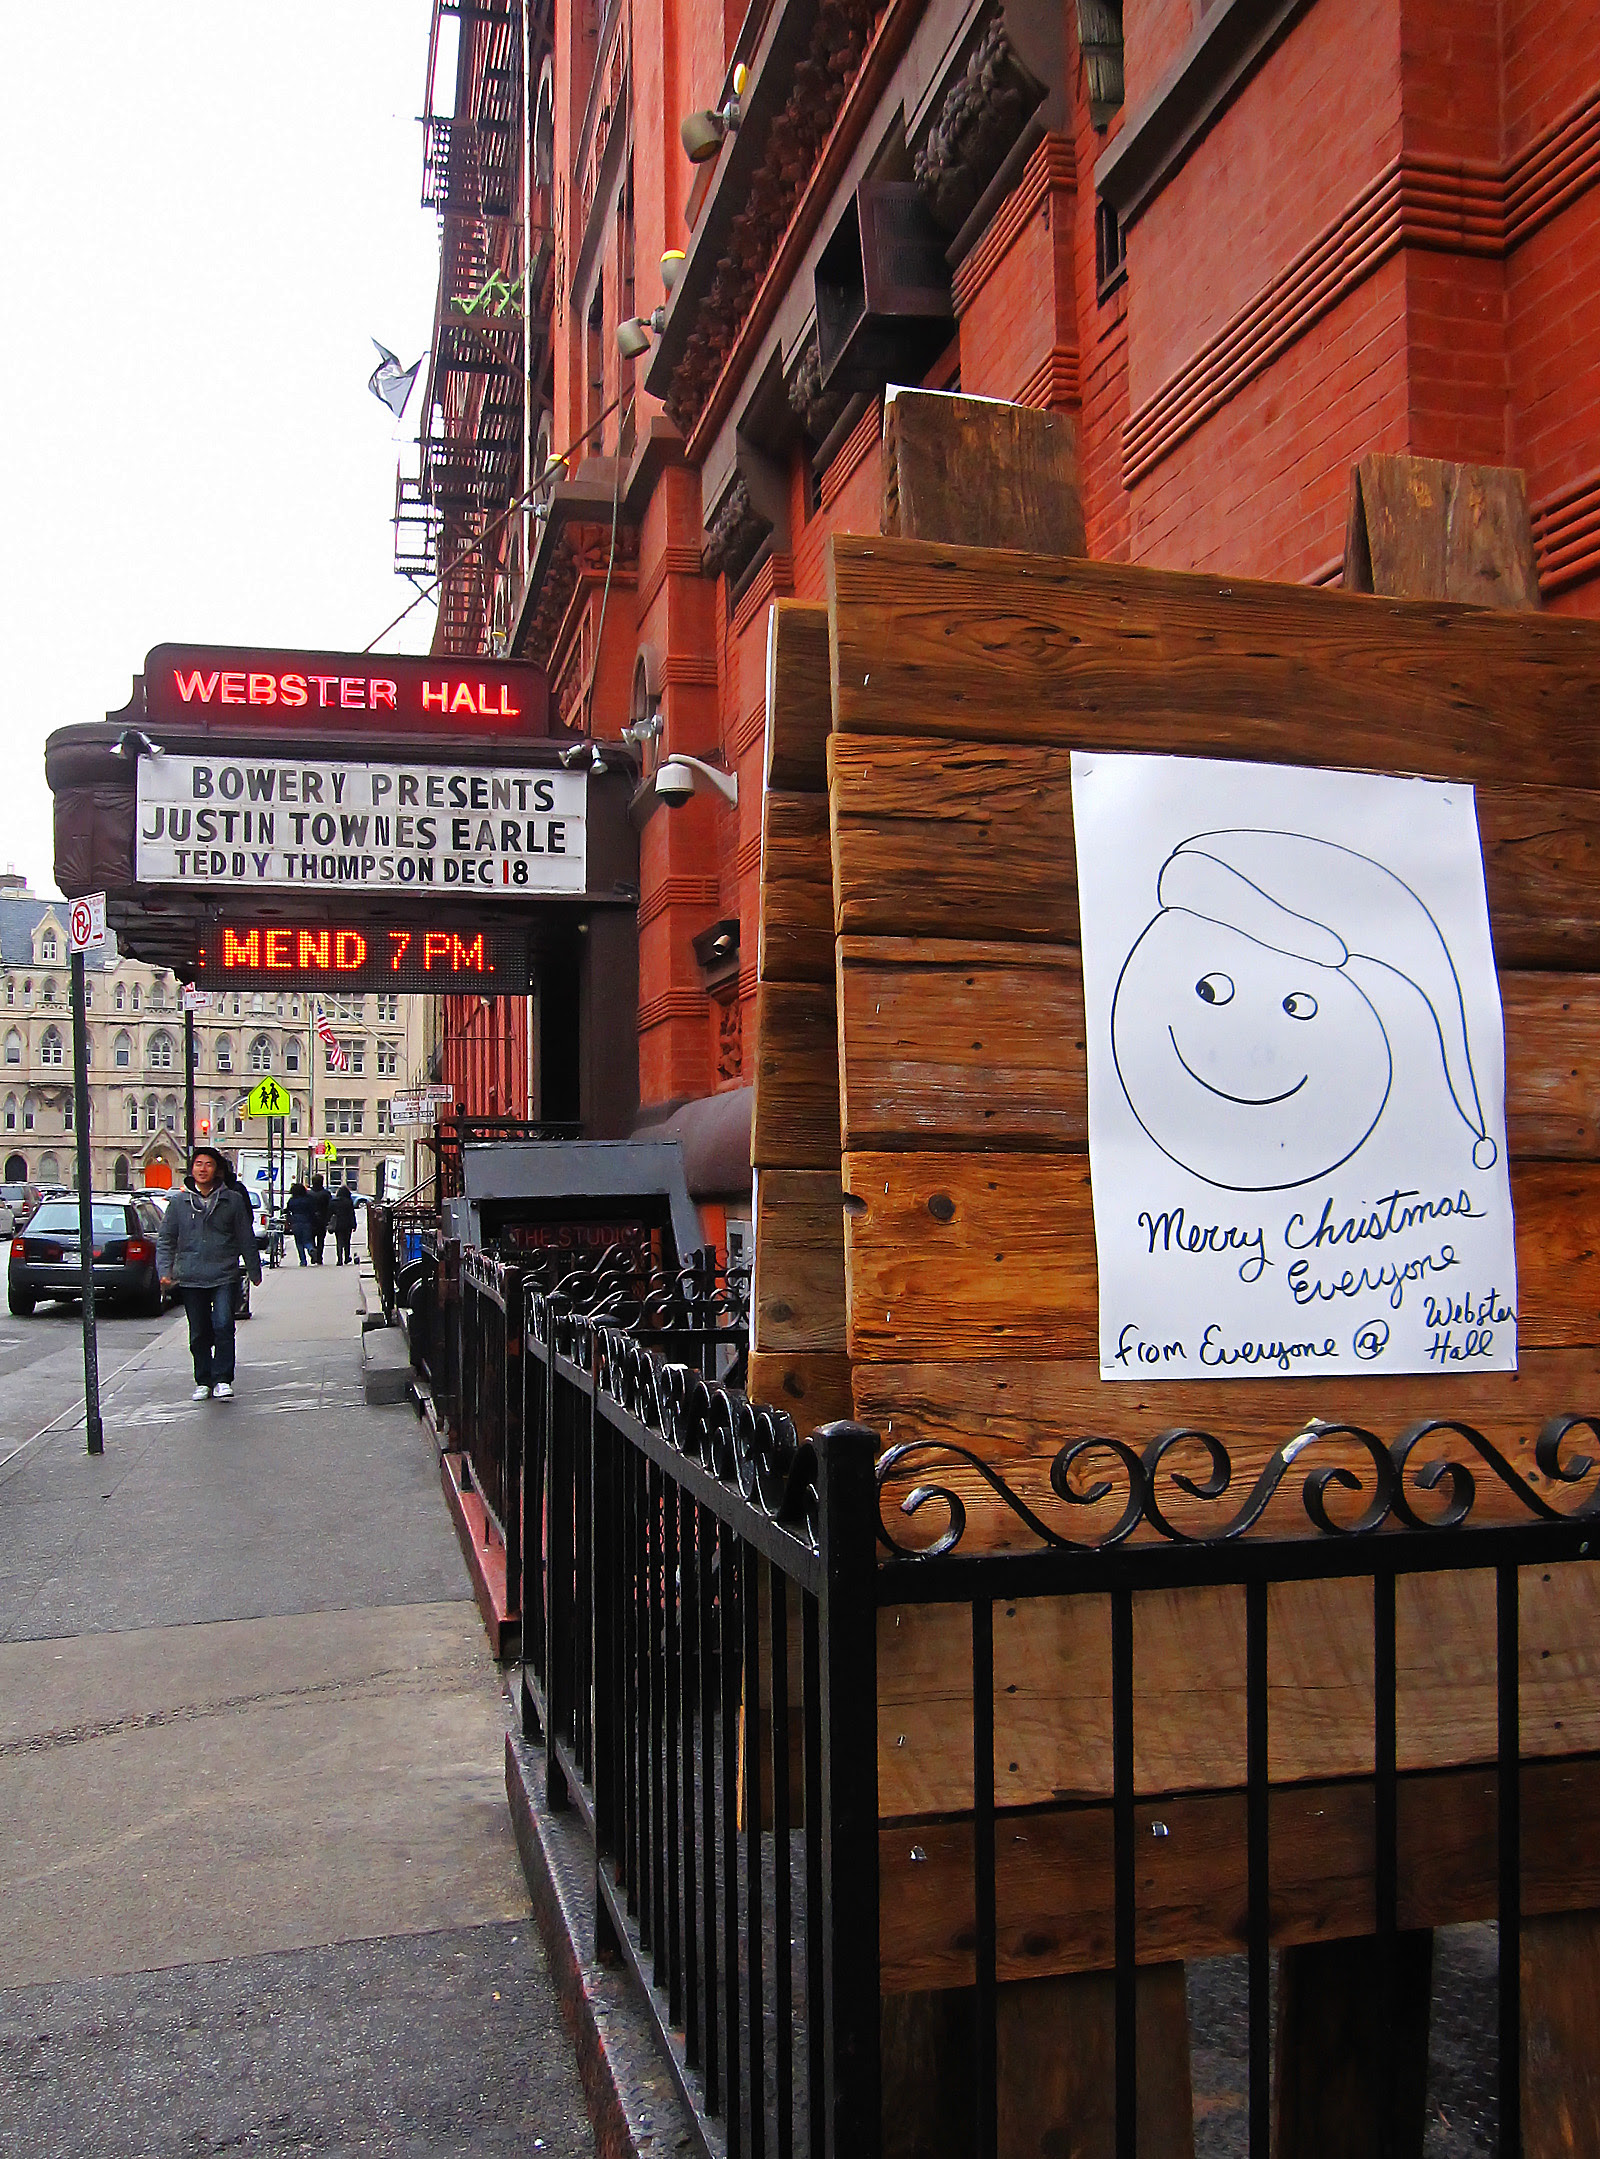 Merry Christmas from Webster Hall